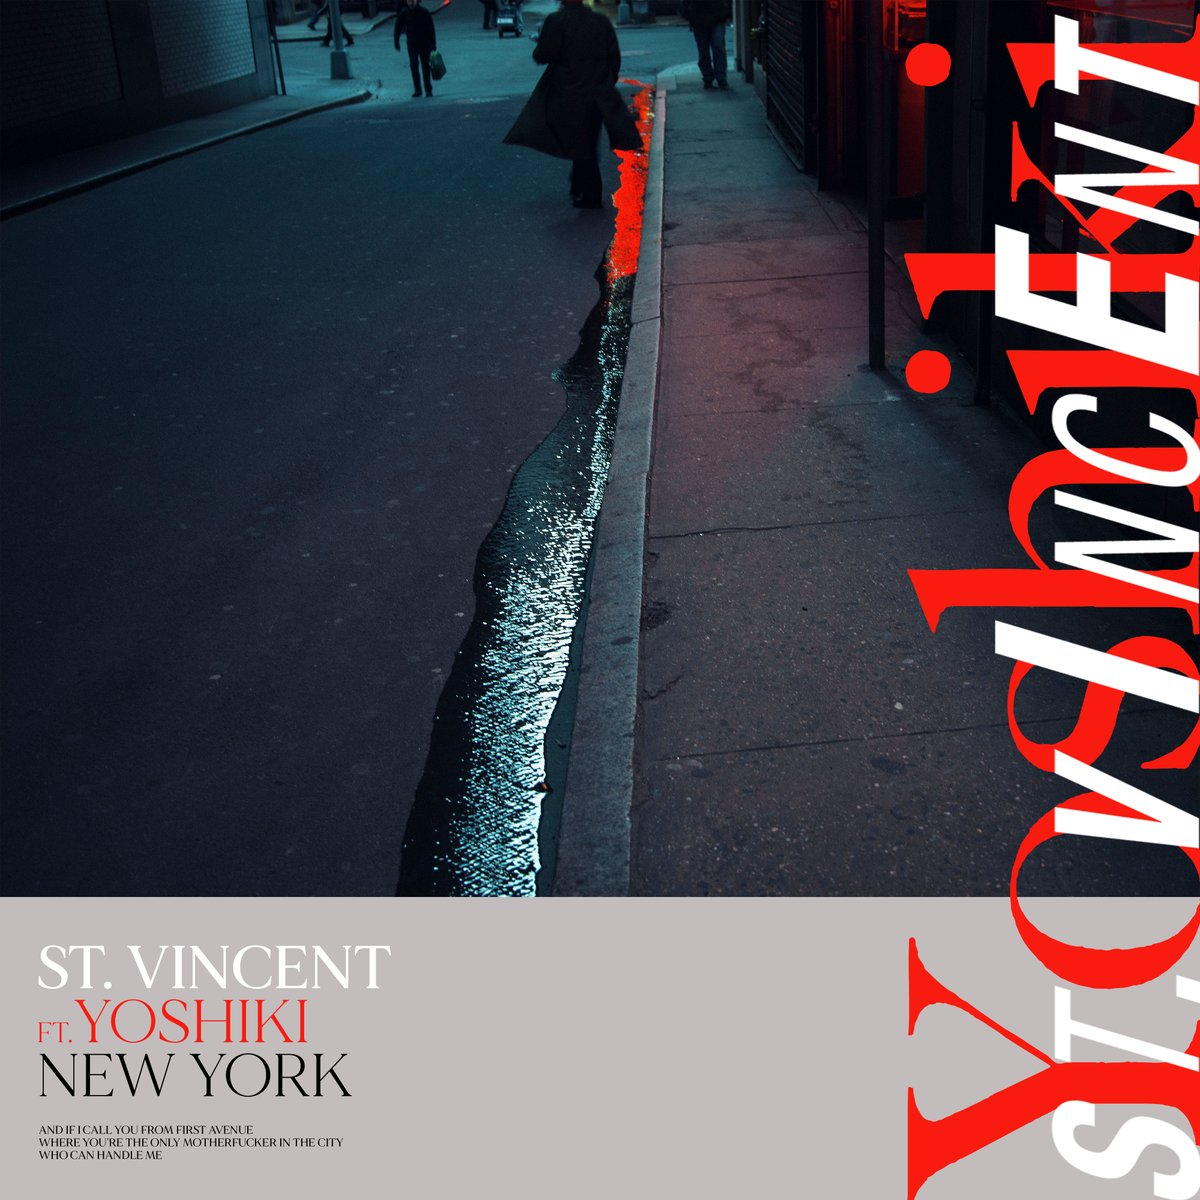 I admire how #StVincent approaches music in an innovative way.NY is a great song to start with,  I'm grateful that she trusted me to rearrange the song. Hope her fans enjoy it, and that my fans will too  @st_vincent NY feat.#YOSHIKI  8/28 本日発売 Listen→ https://t.co/mT8NAi6x2U https://t.co/1Y9GFnksET